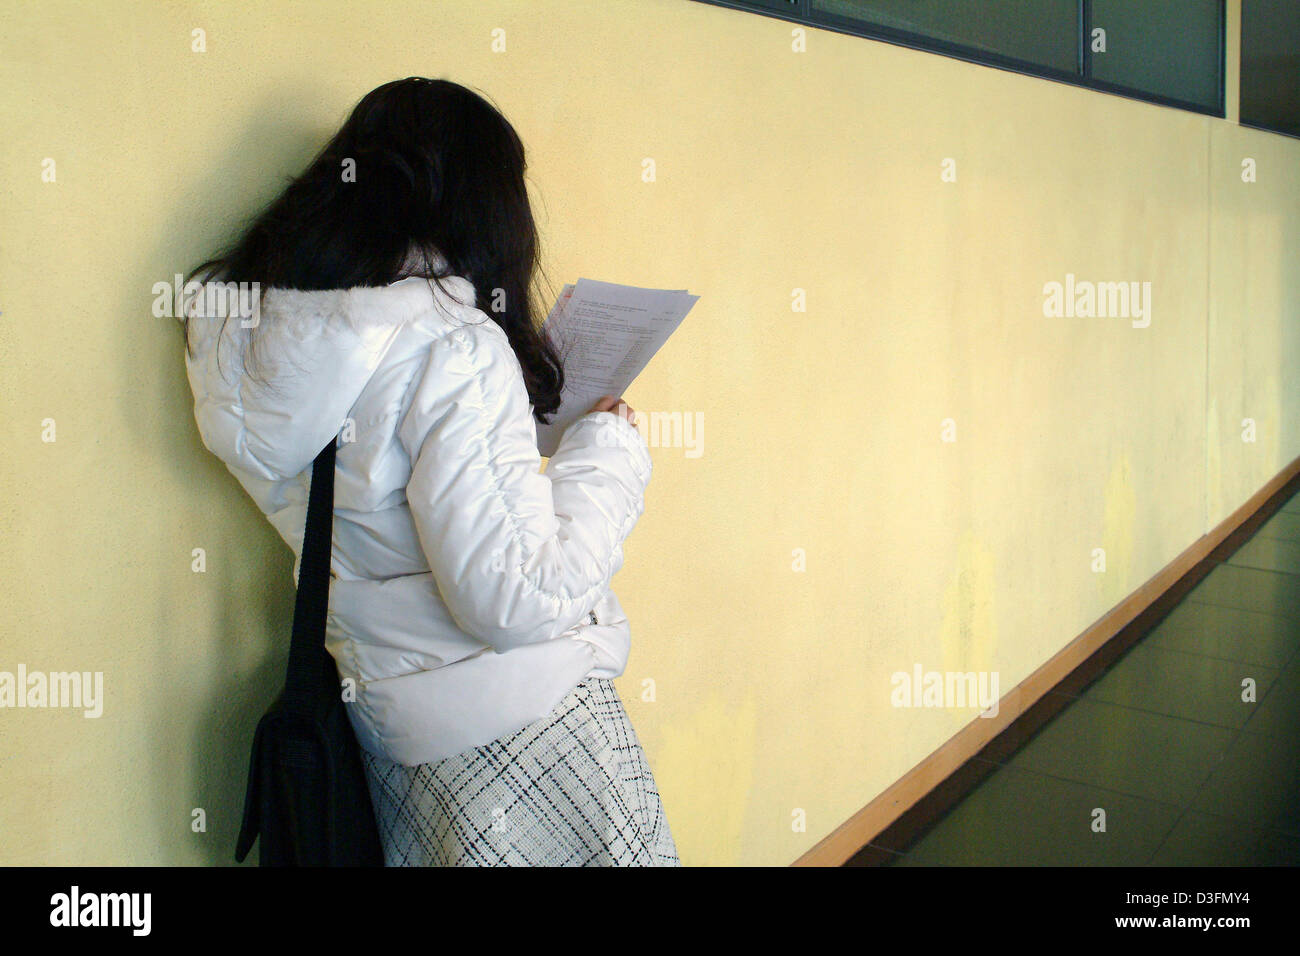 (dpa) - A female student reads a handout at the community college's hall in Frankfurt, Germany, 19 November 2004. Stock Photo